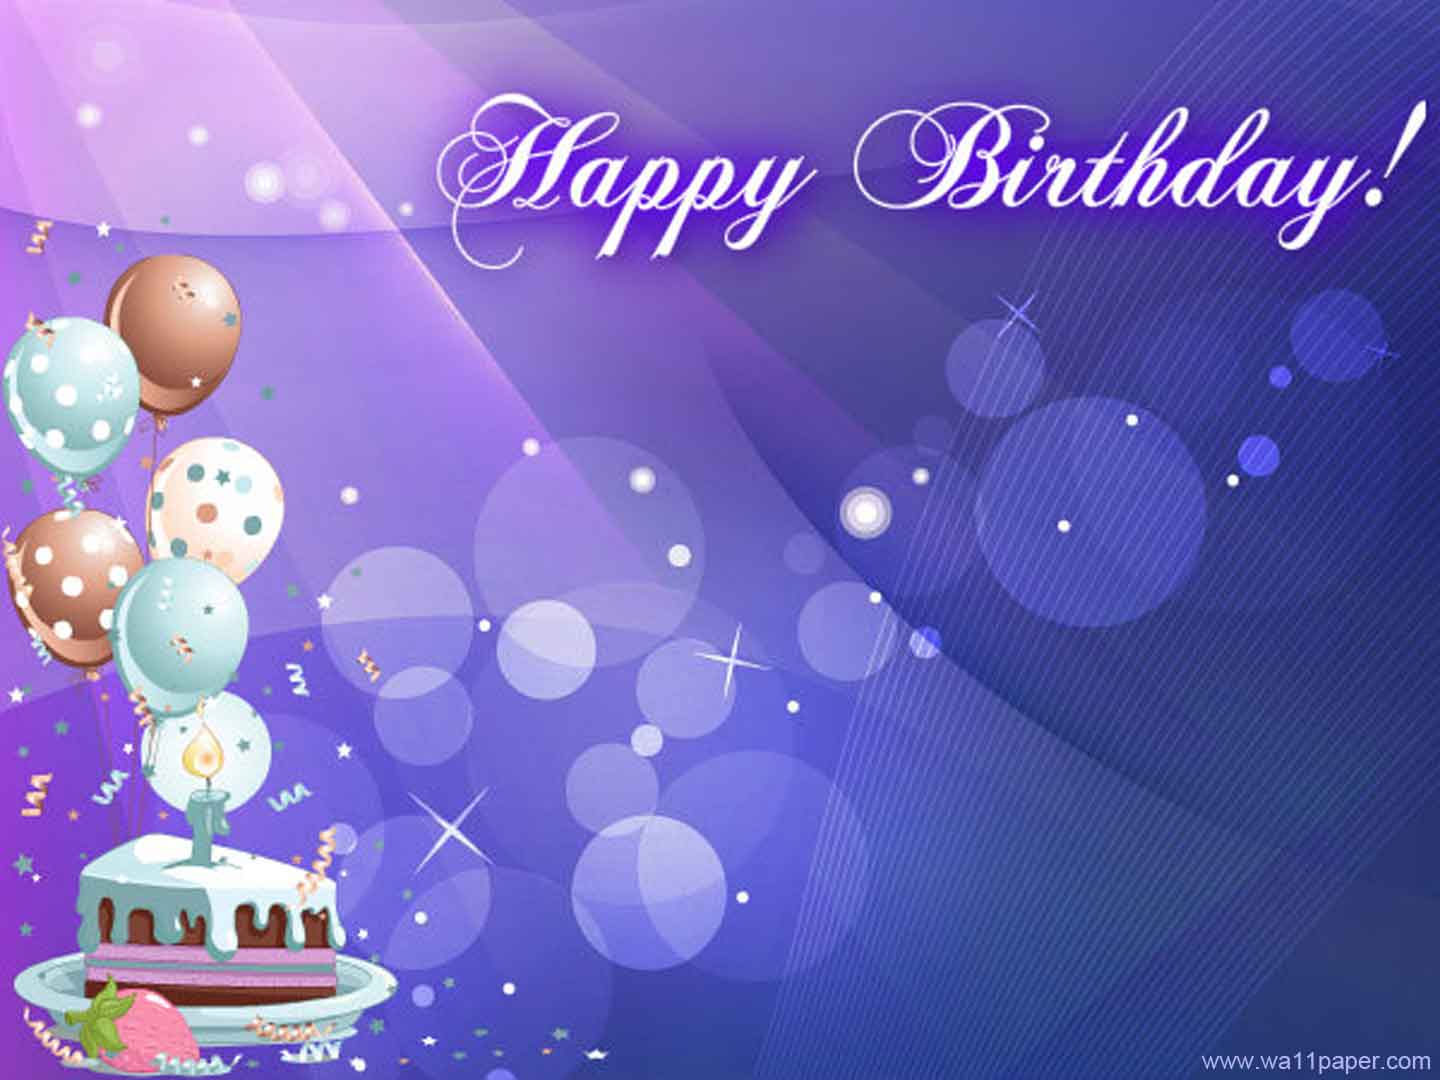 Happy Bithday Wallpaper